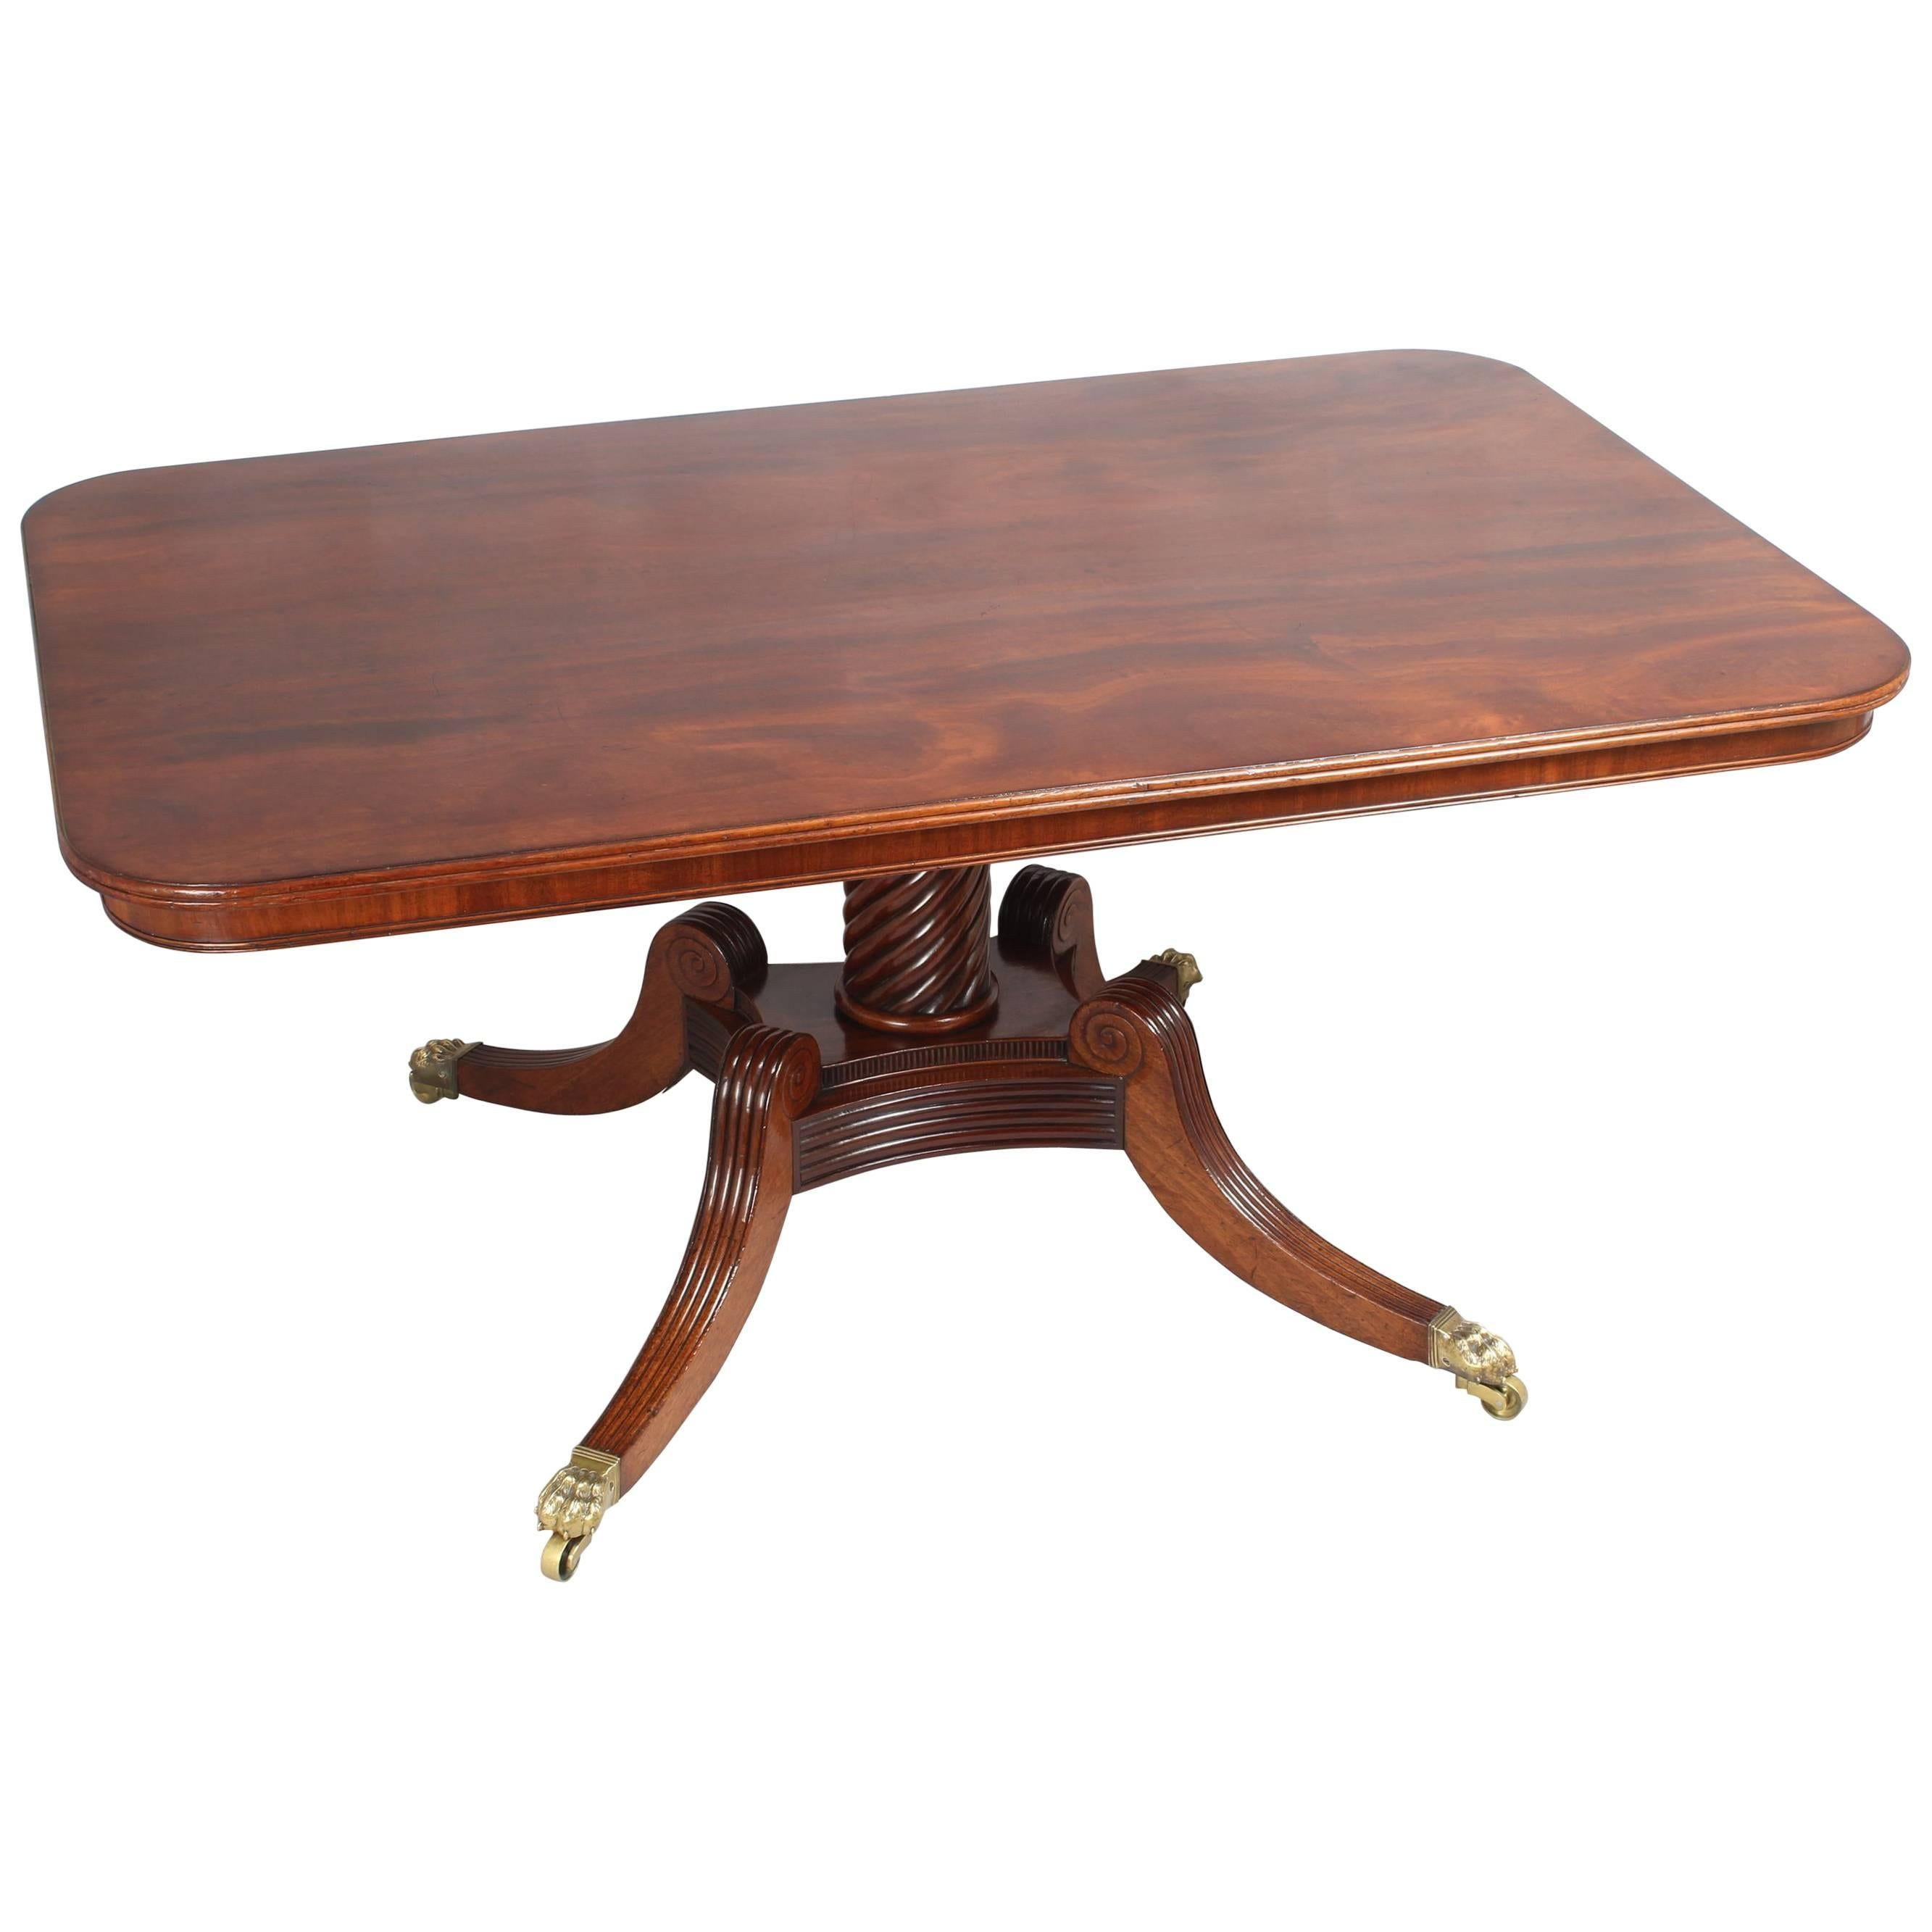 High Quality George IV Period Mahogany Breakfast Table